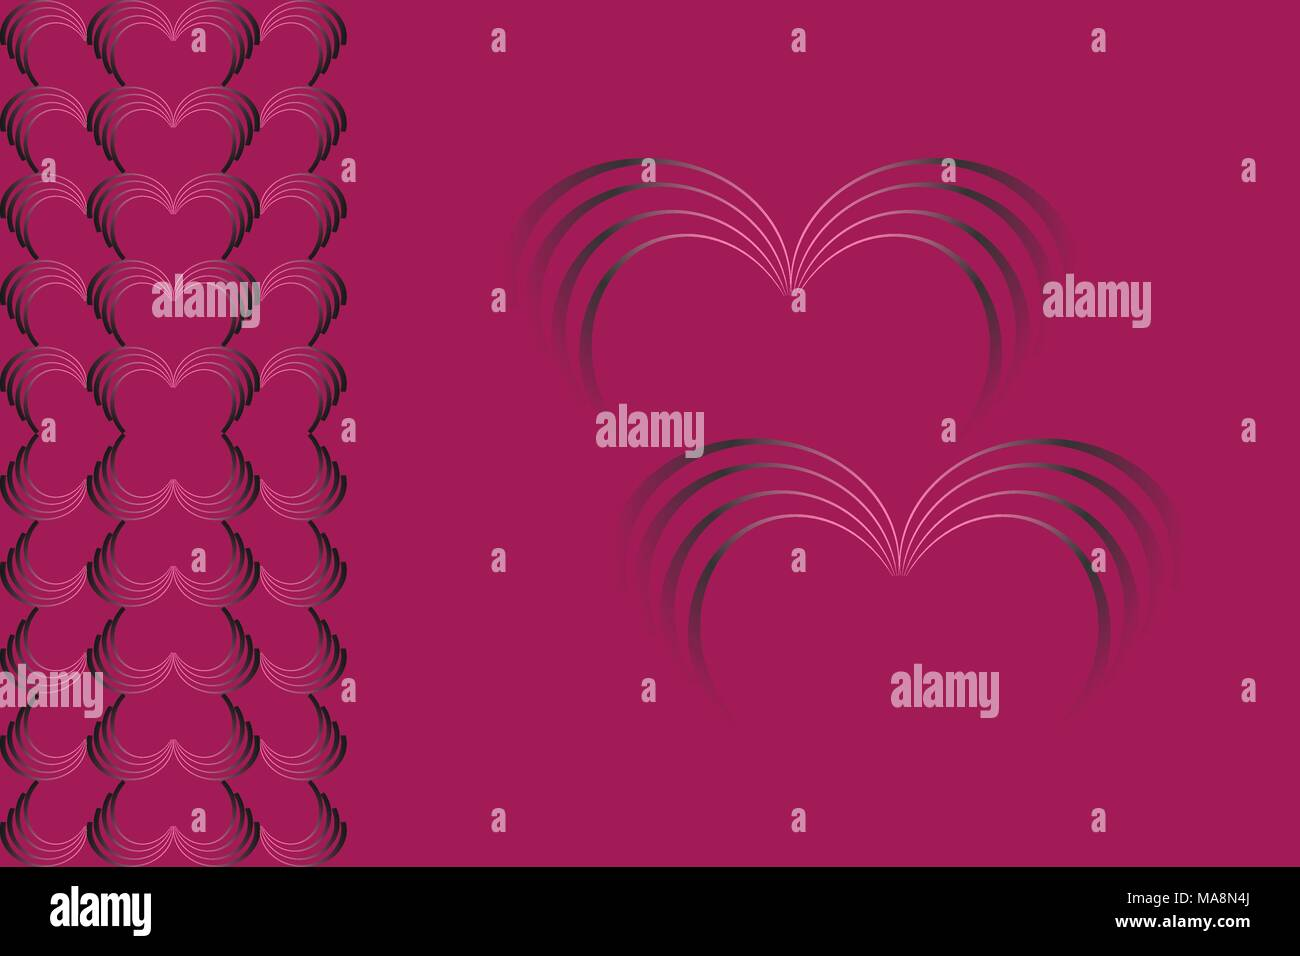 Abstract pattern of stacked heart shape. Concepts of love, romance, valentine's day and wedding. - Stock Vector